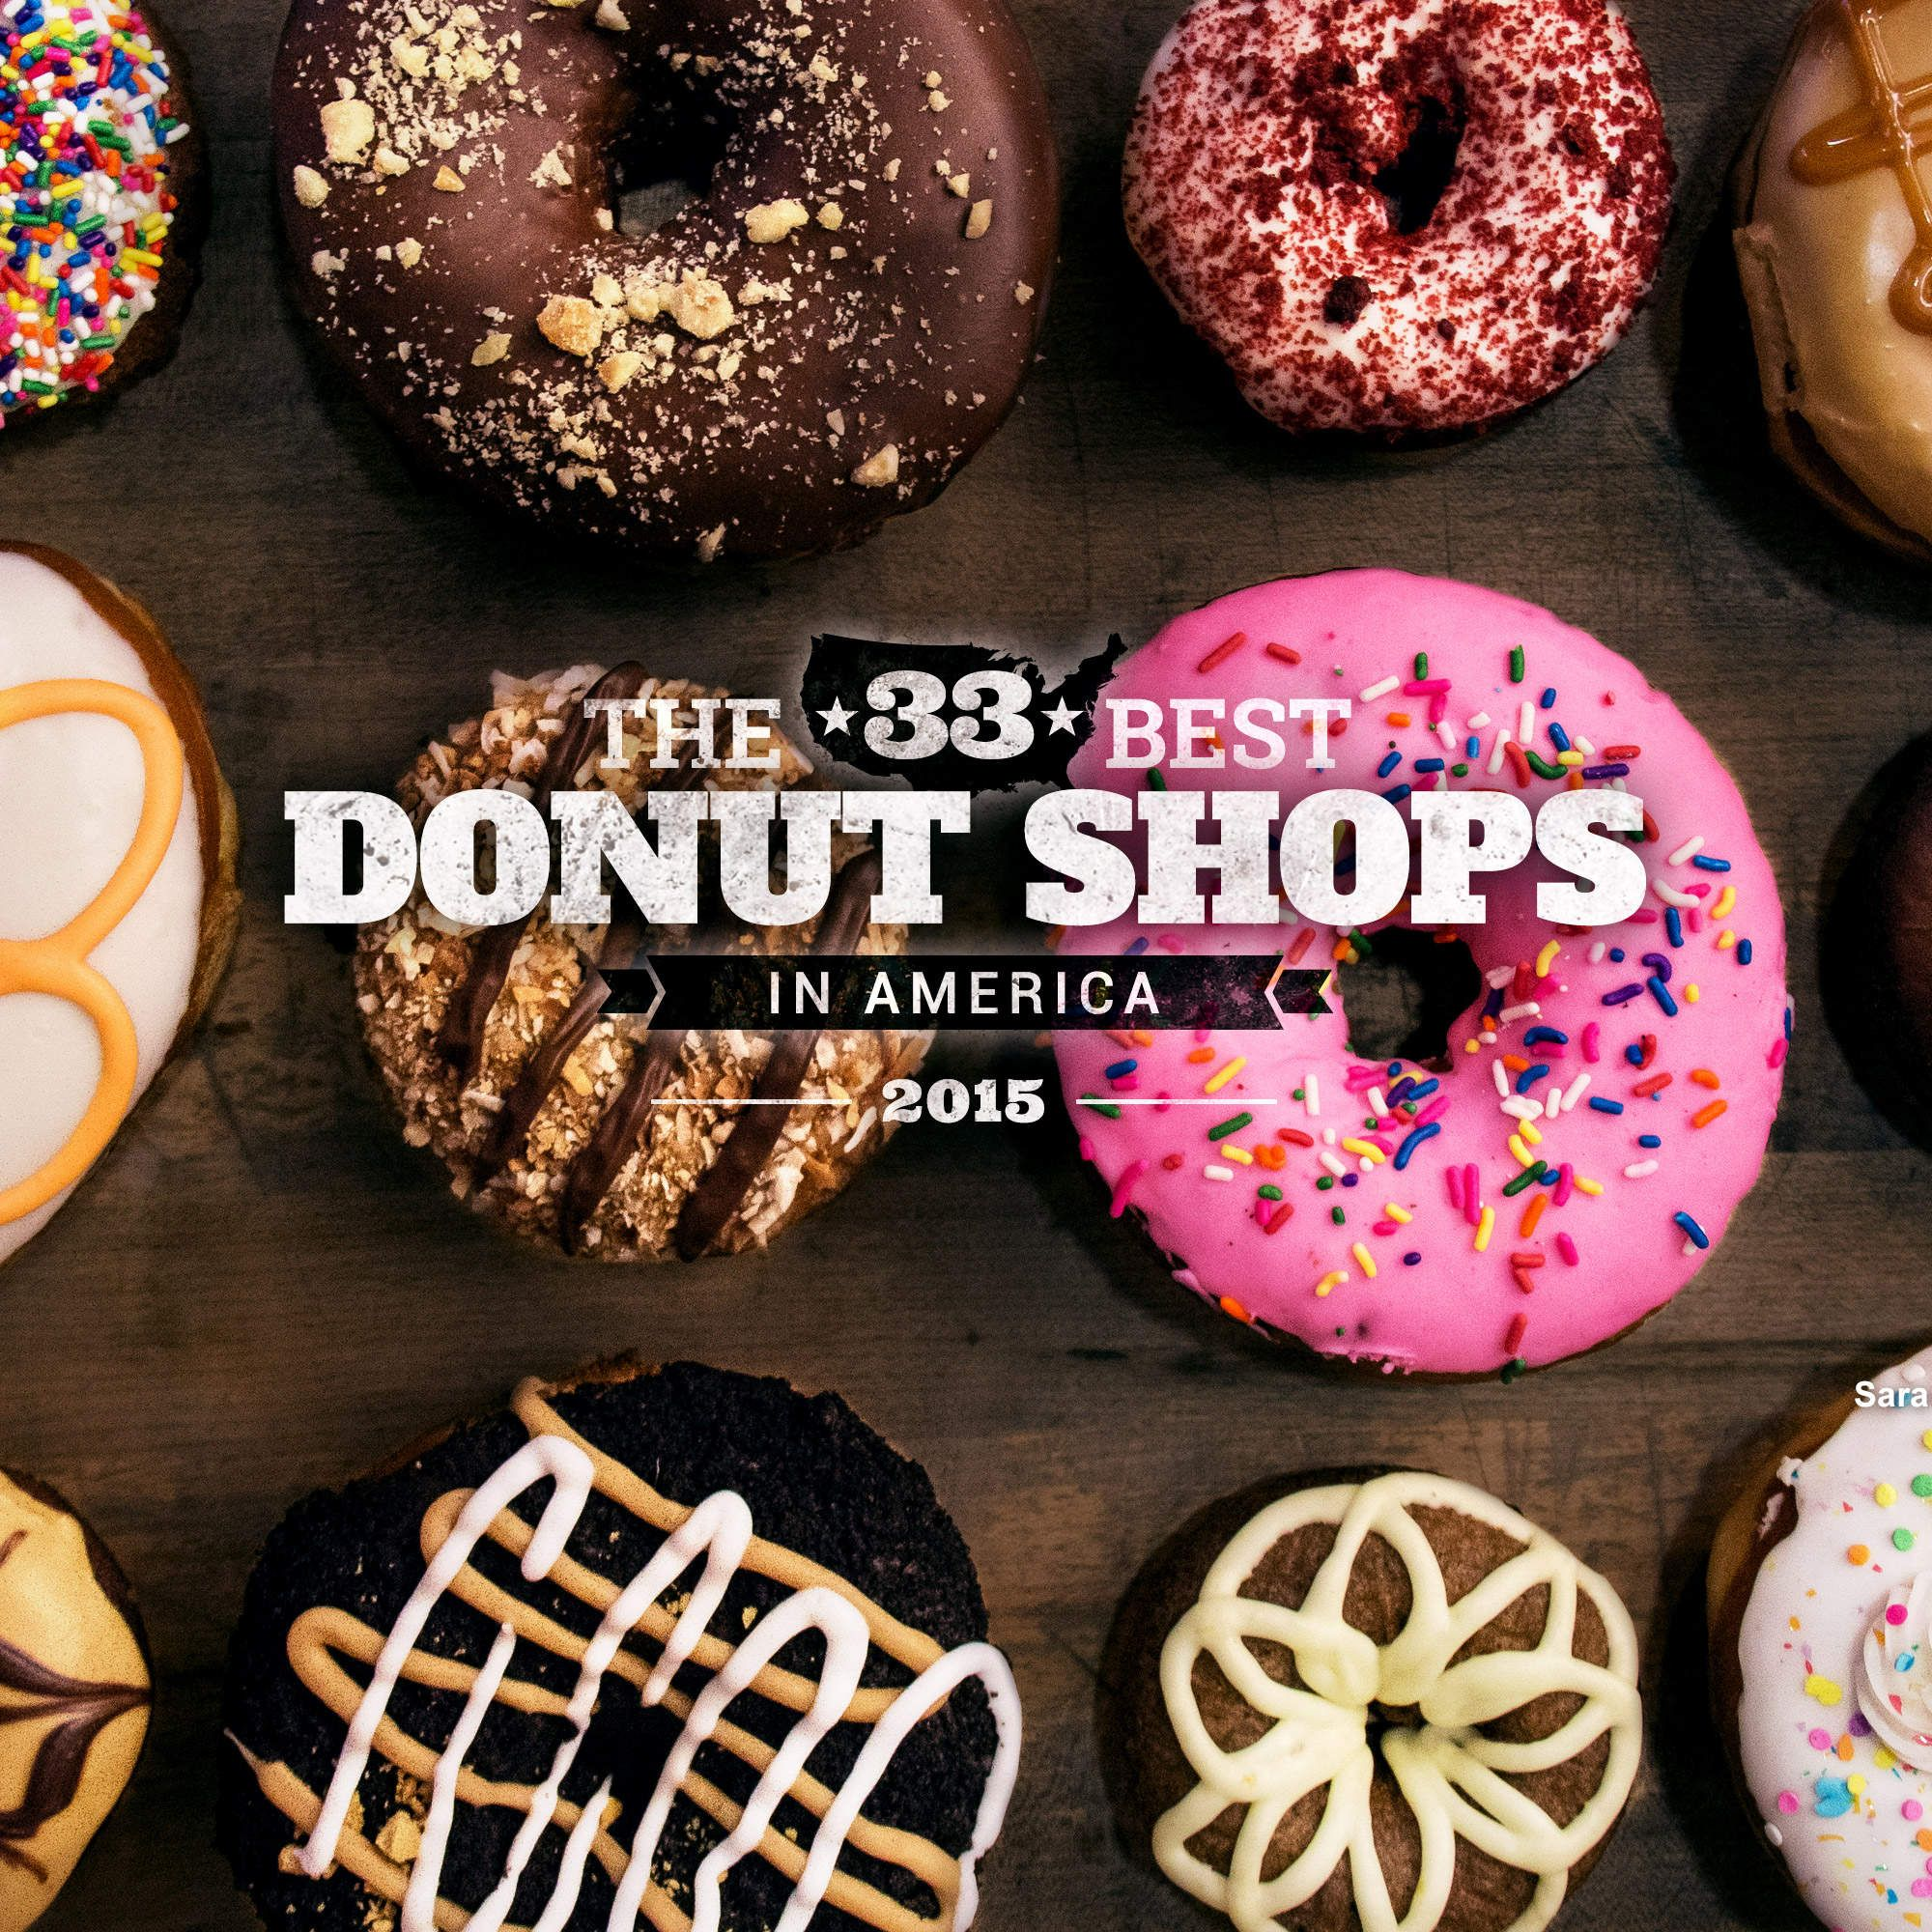 The 31 Best Donut Shops in America | Donut shop, Donuts, Food